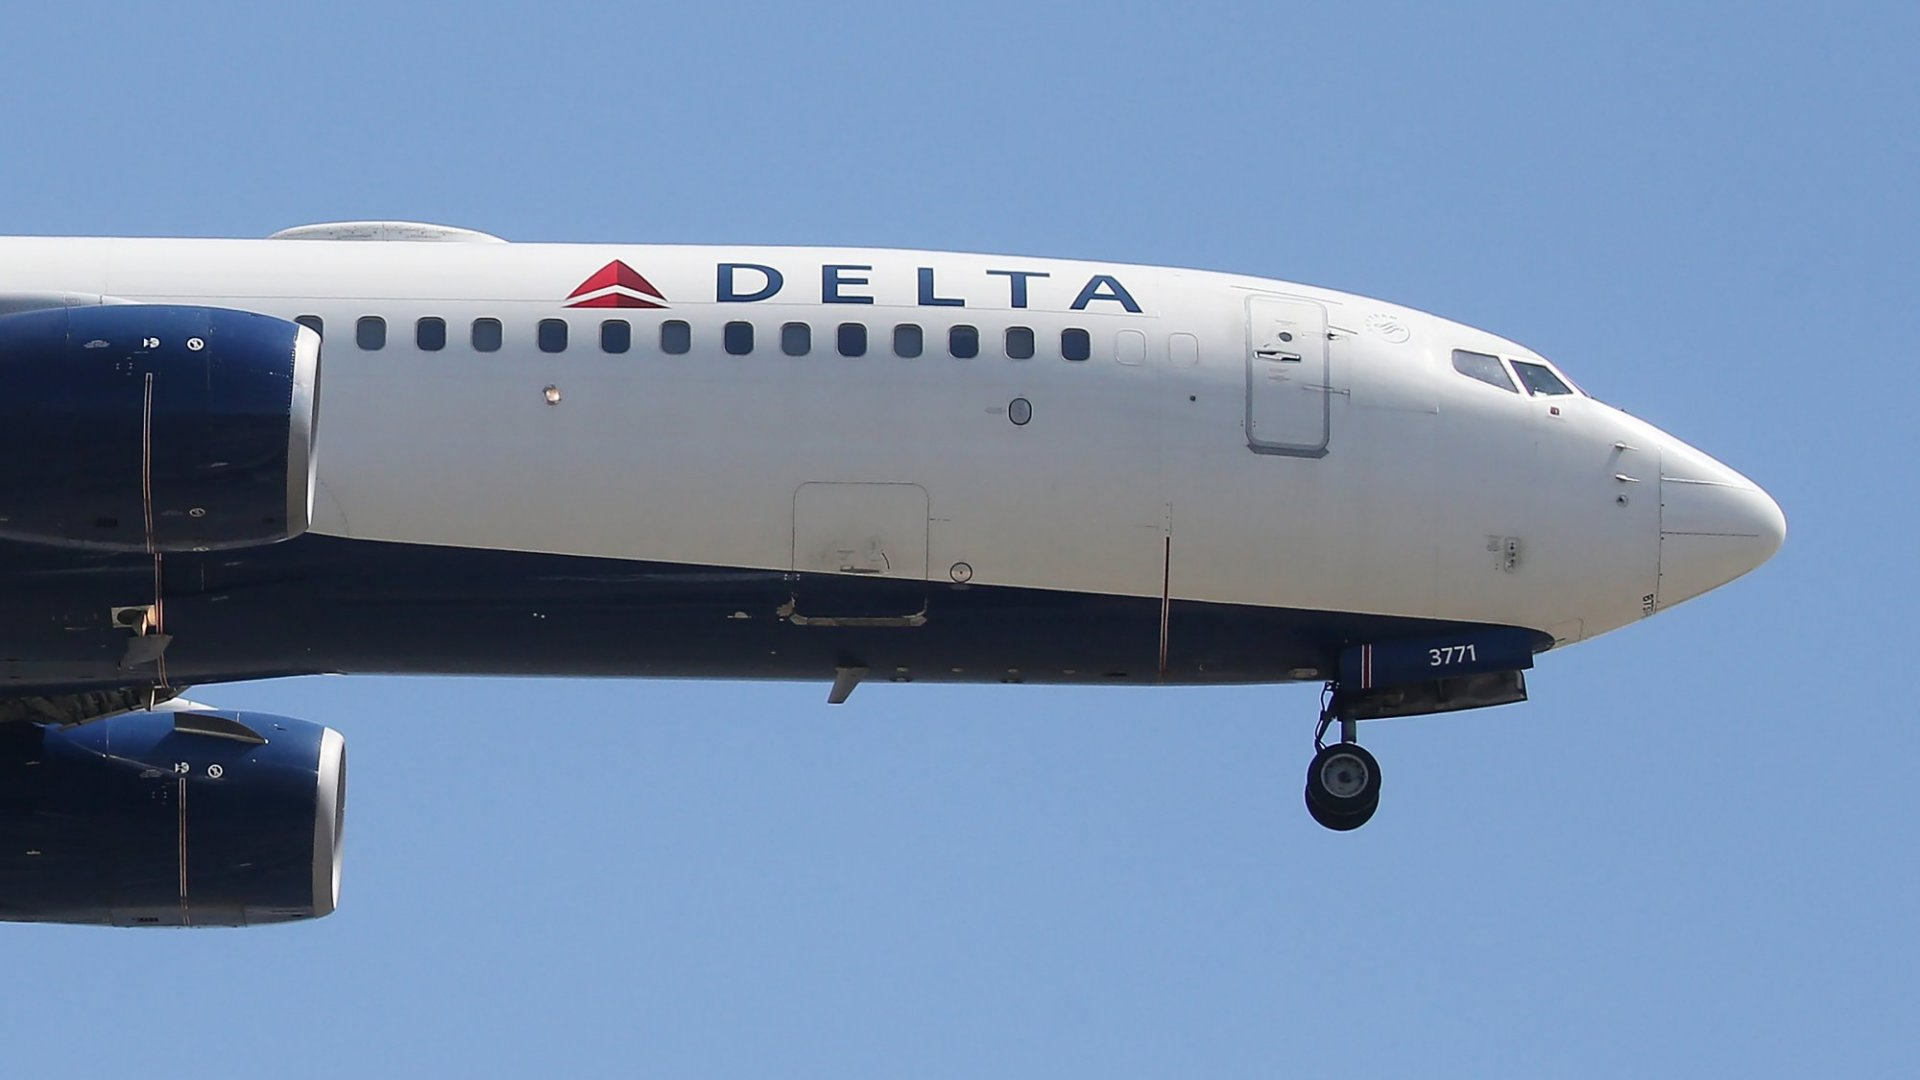 Delta Air Lines Was Known for Being Kind and Thoughtful. Then It Showed Its Shockingly Nasty Side